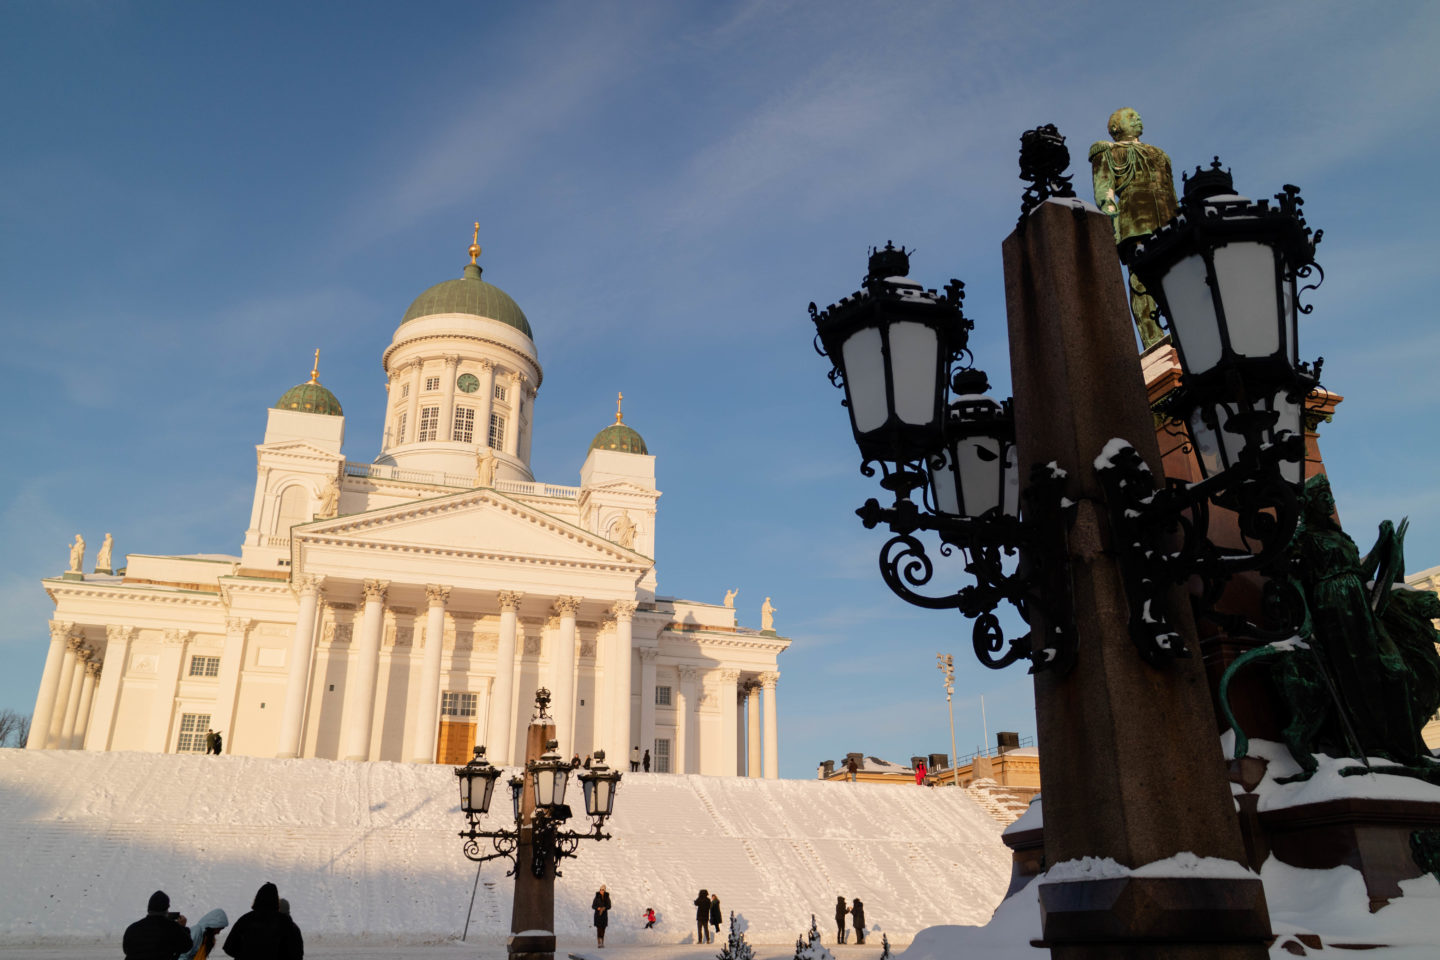 One day in Helsinki - the Helsinki Cathedral